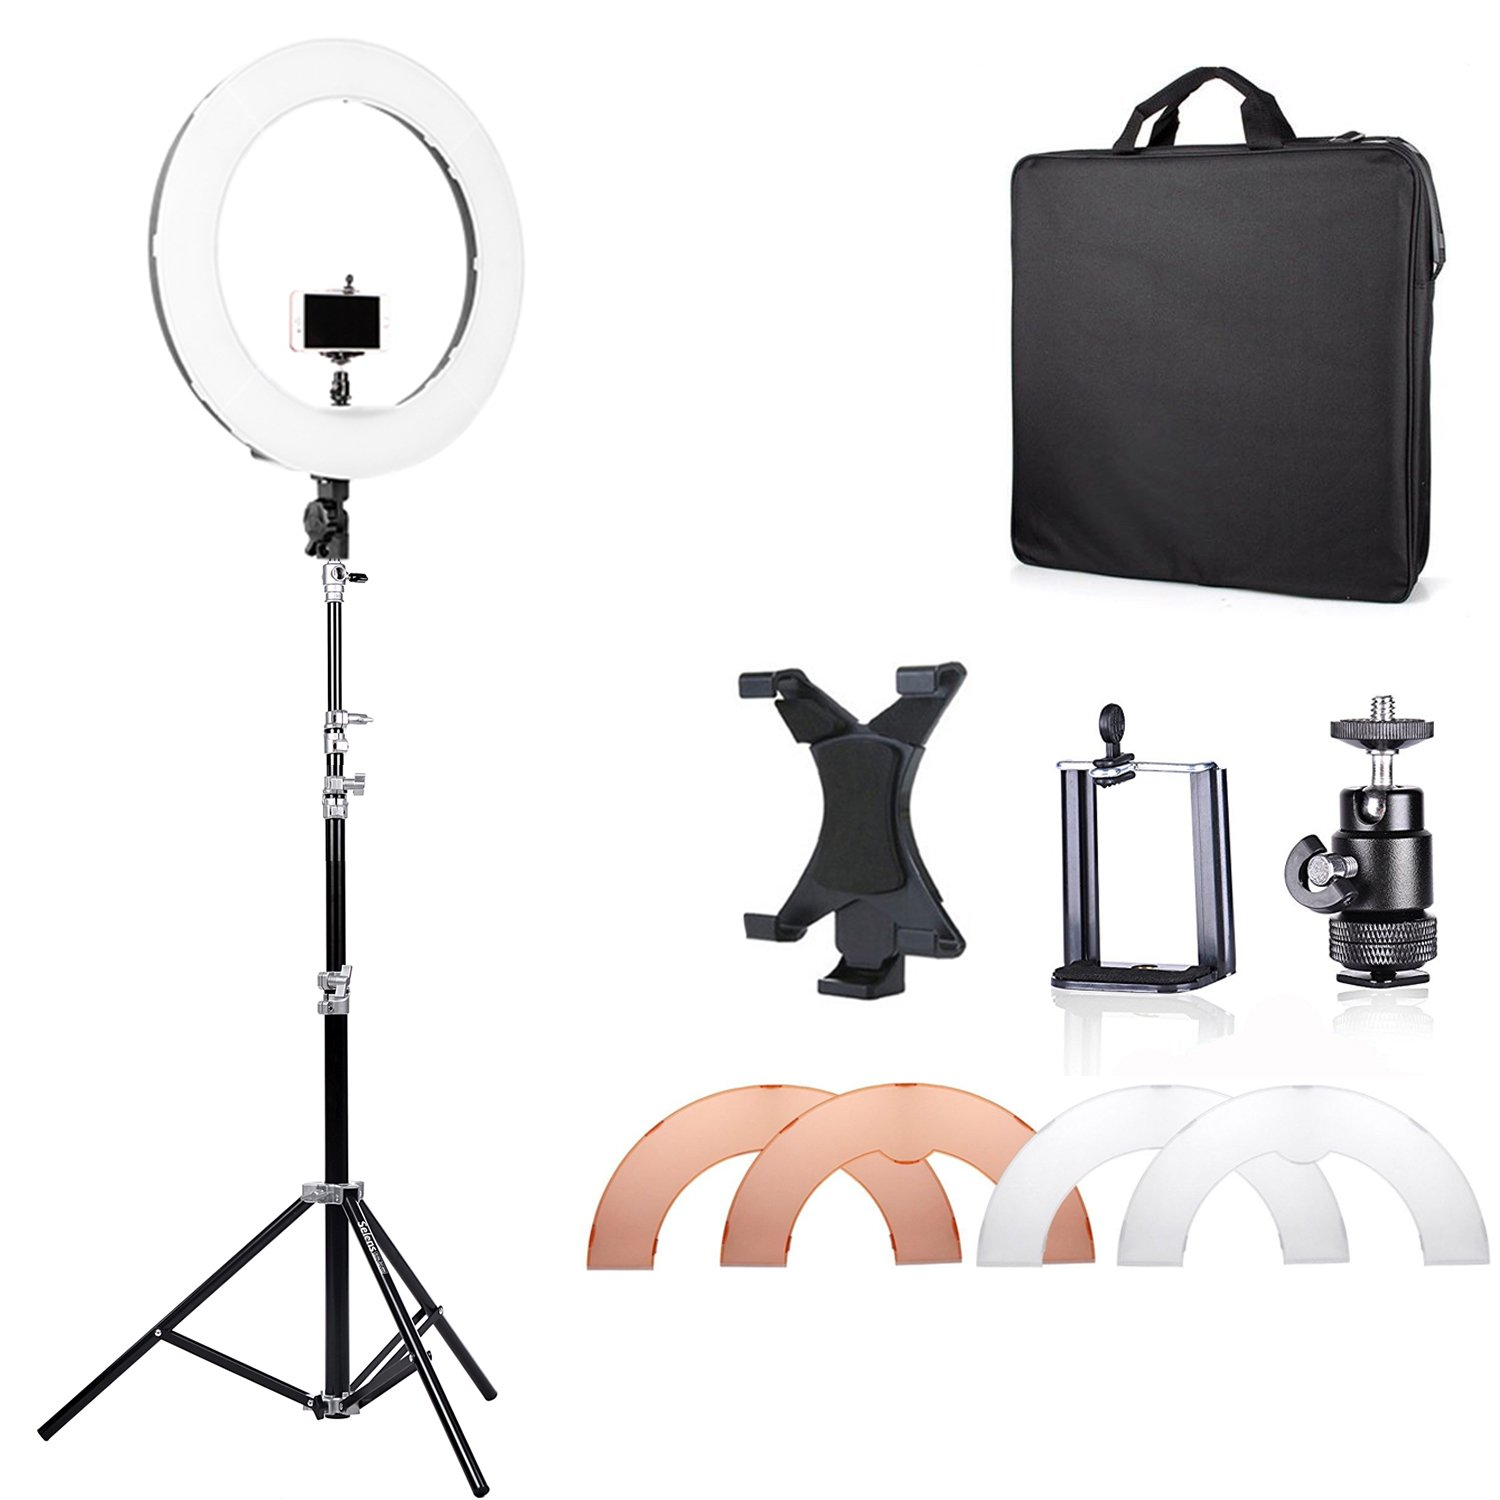 Selens 18 inches/48 cm Outer Dimmable LED Ring Light with 2200A Stand, mount for DSLR Camera Smartphone Ipad, Photo Video Lighting Kit for Photography, Self-Portrait Video Shooting, Youtube